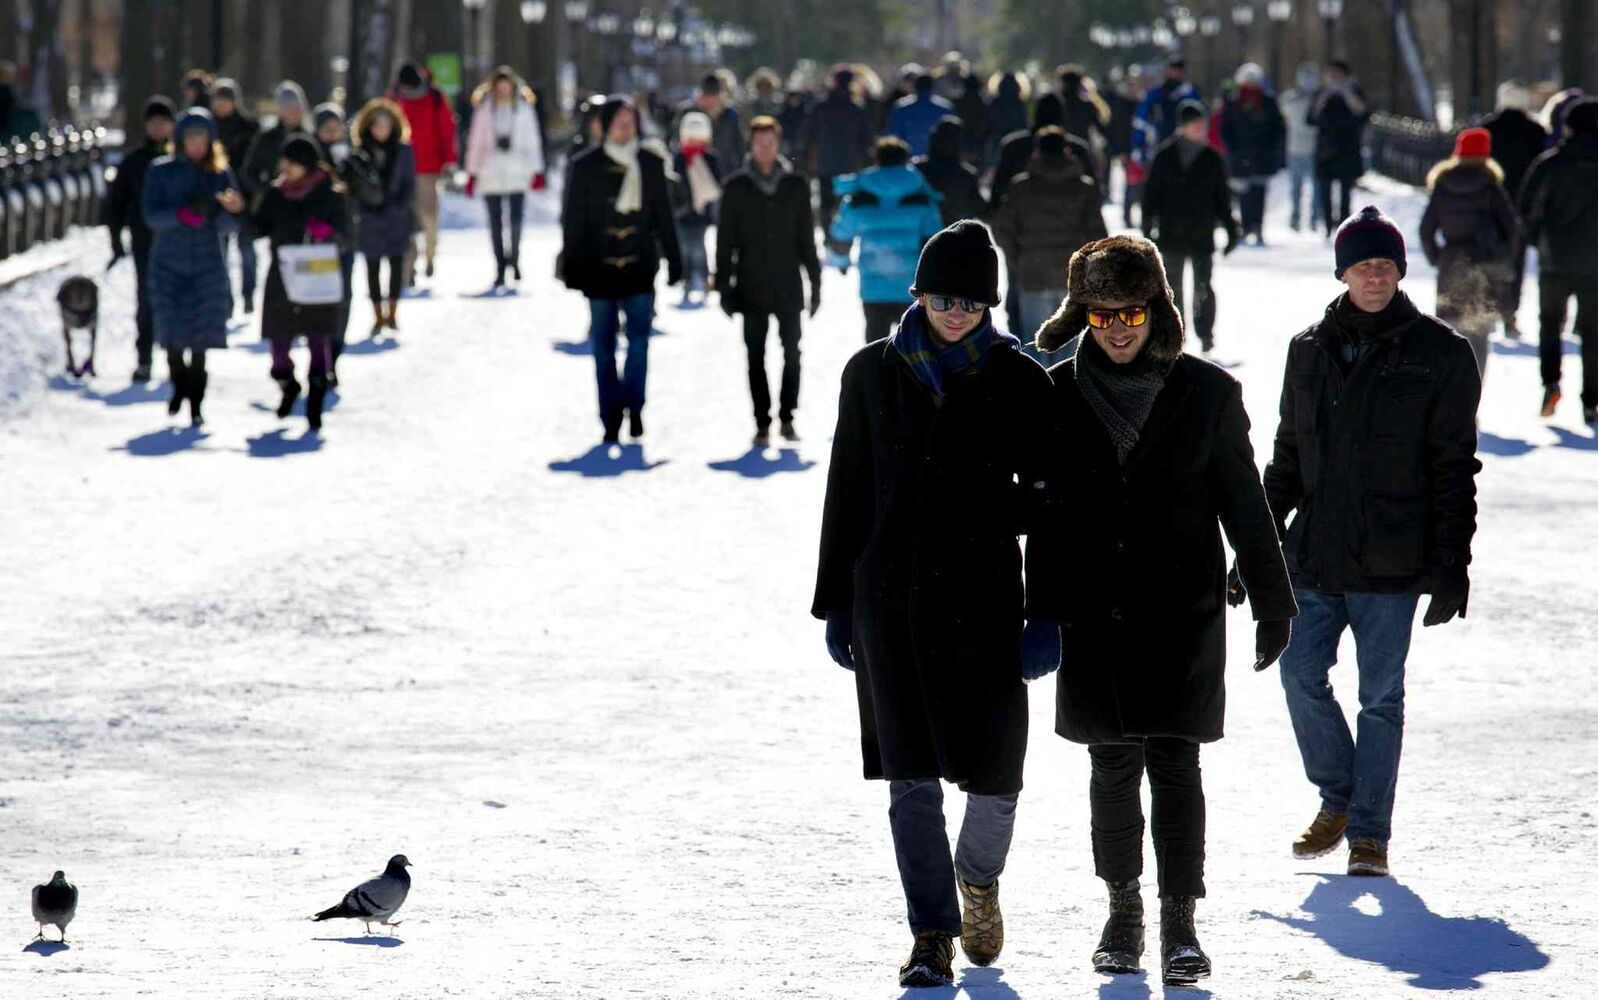 People and animals walk in the cold and snow in Central Park in New York after a snow storm blanketed the area on Friday, Jan. 3. (Craig Ruttle / Tribune Media MCT / Newsday)